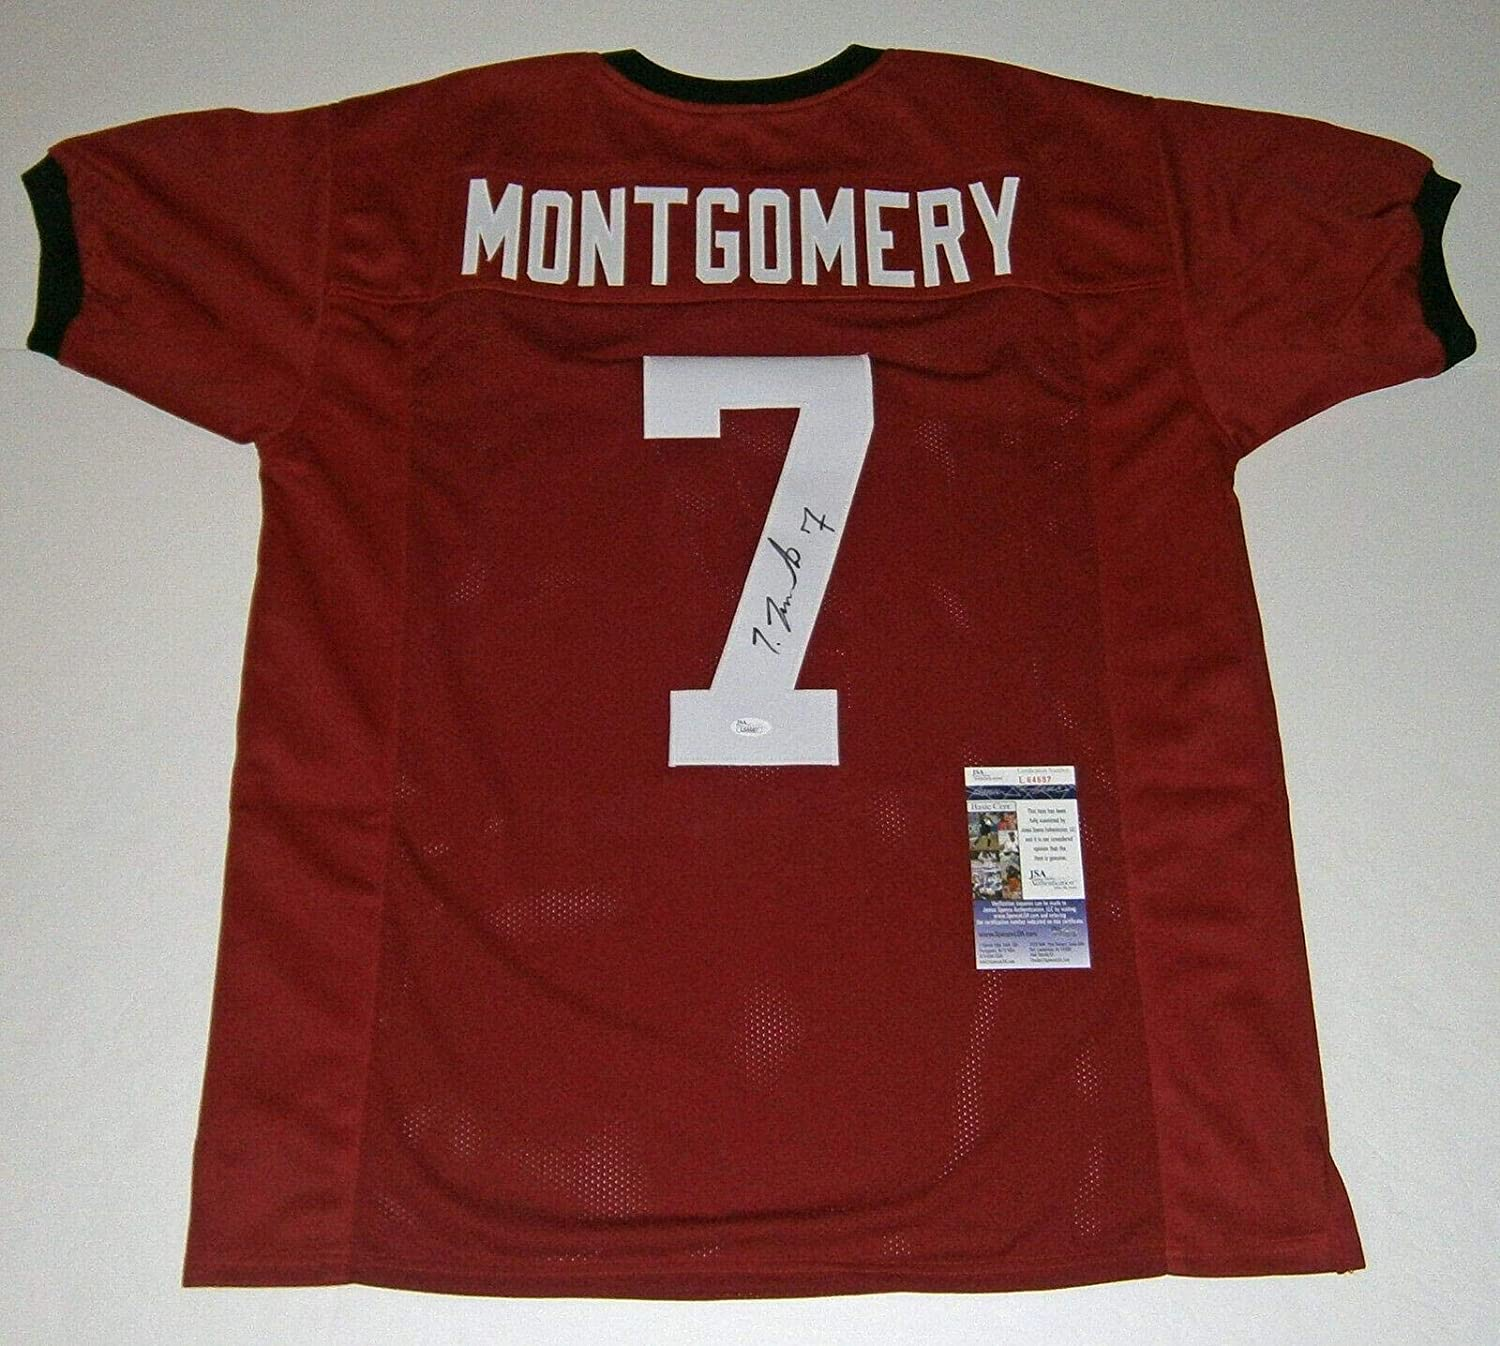 ty montgomery jersey, OFF 75%,Cheap price!